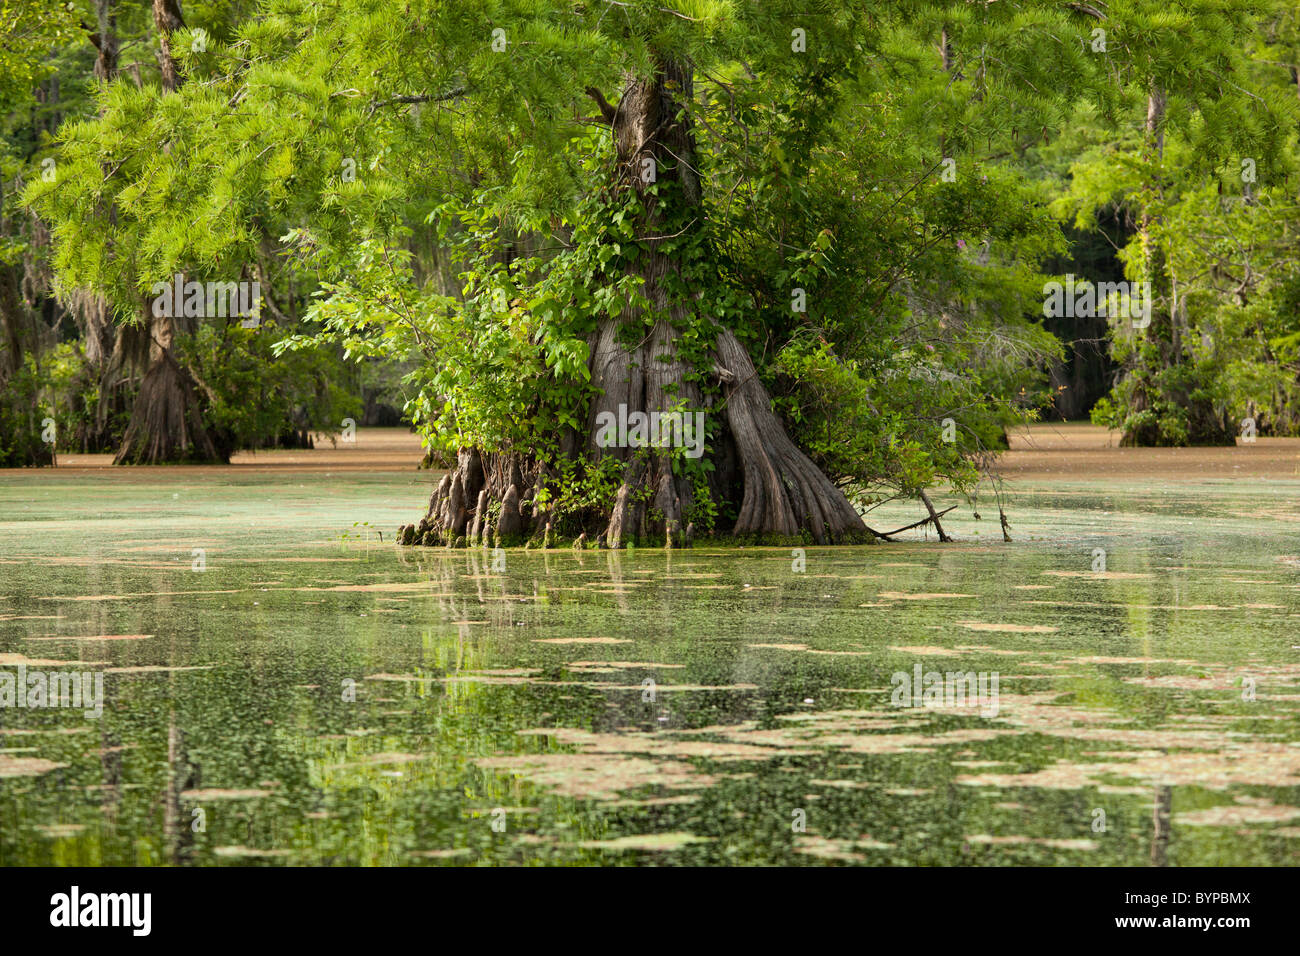 USA, North Carolina, Merchants Millpond State Park, Cypress trees growing in swamp green with duckweed - Stock Image